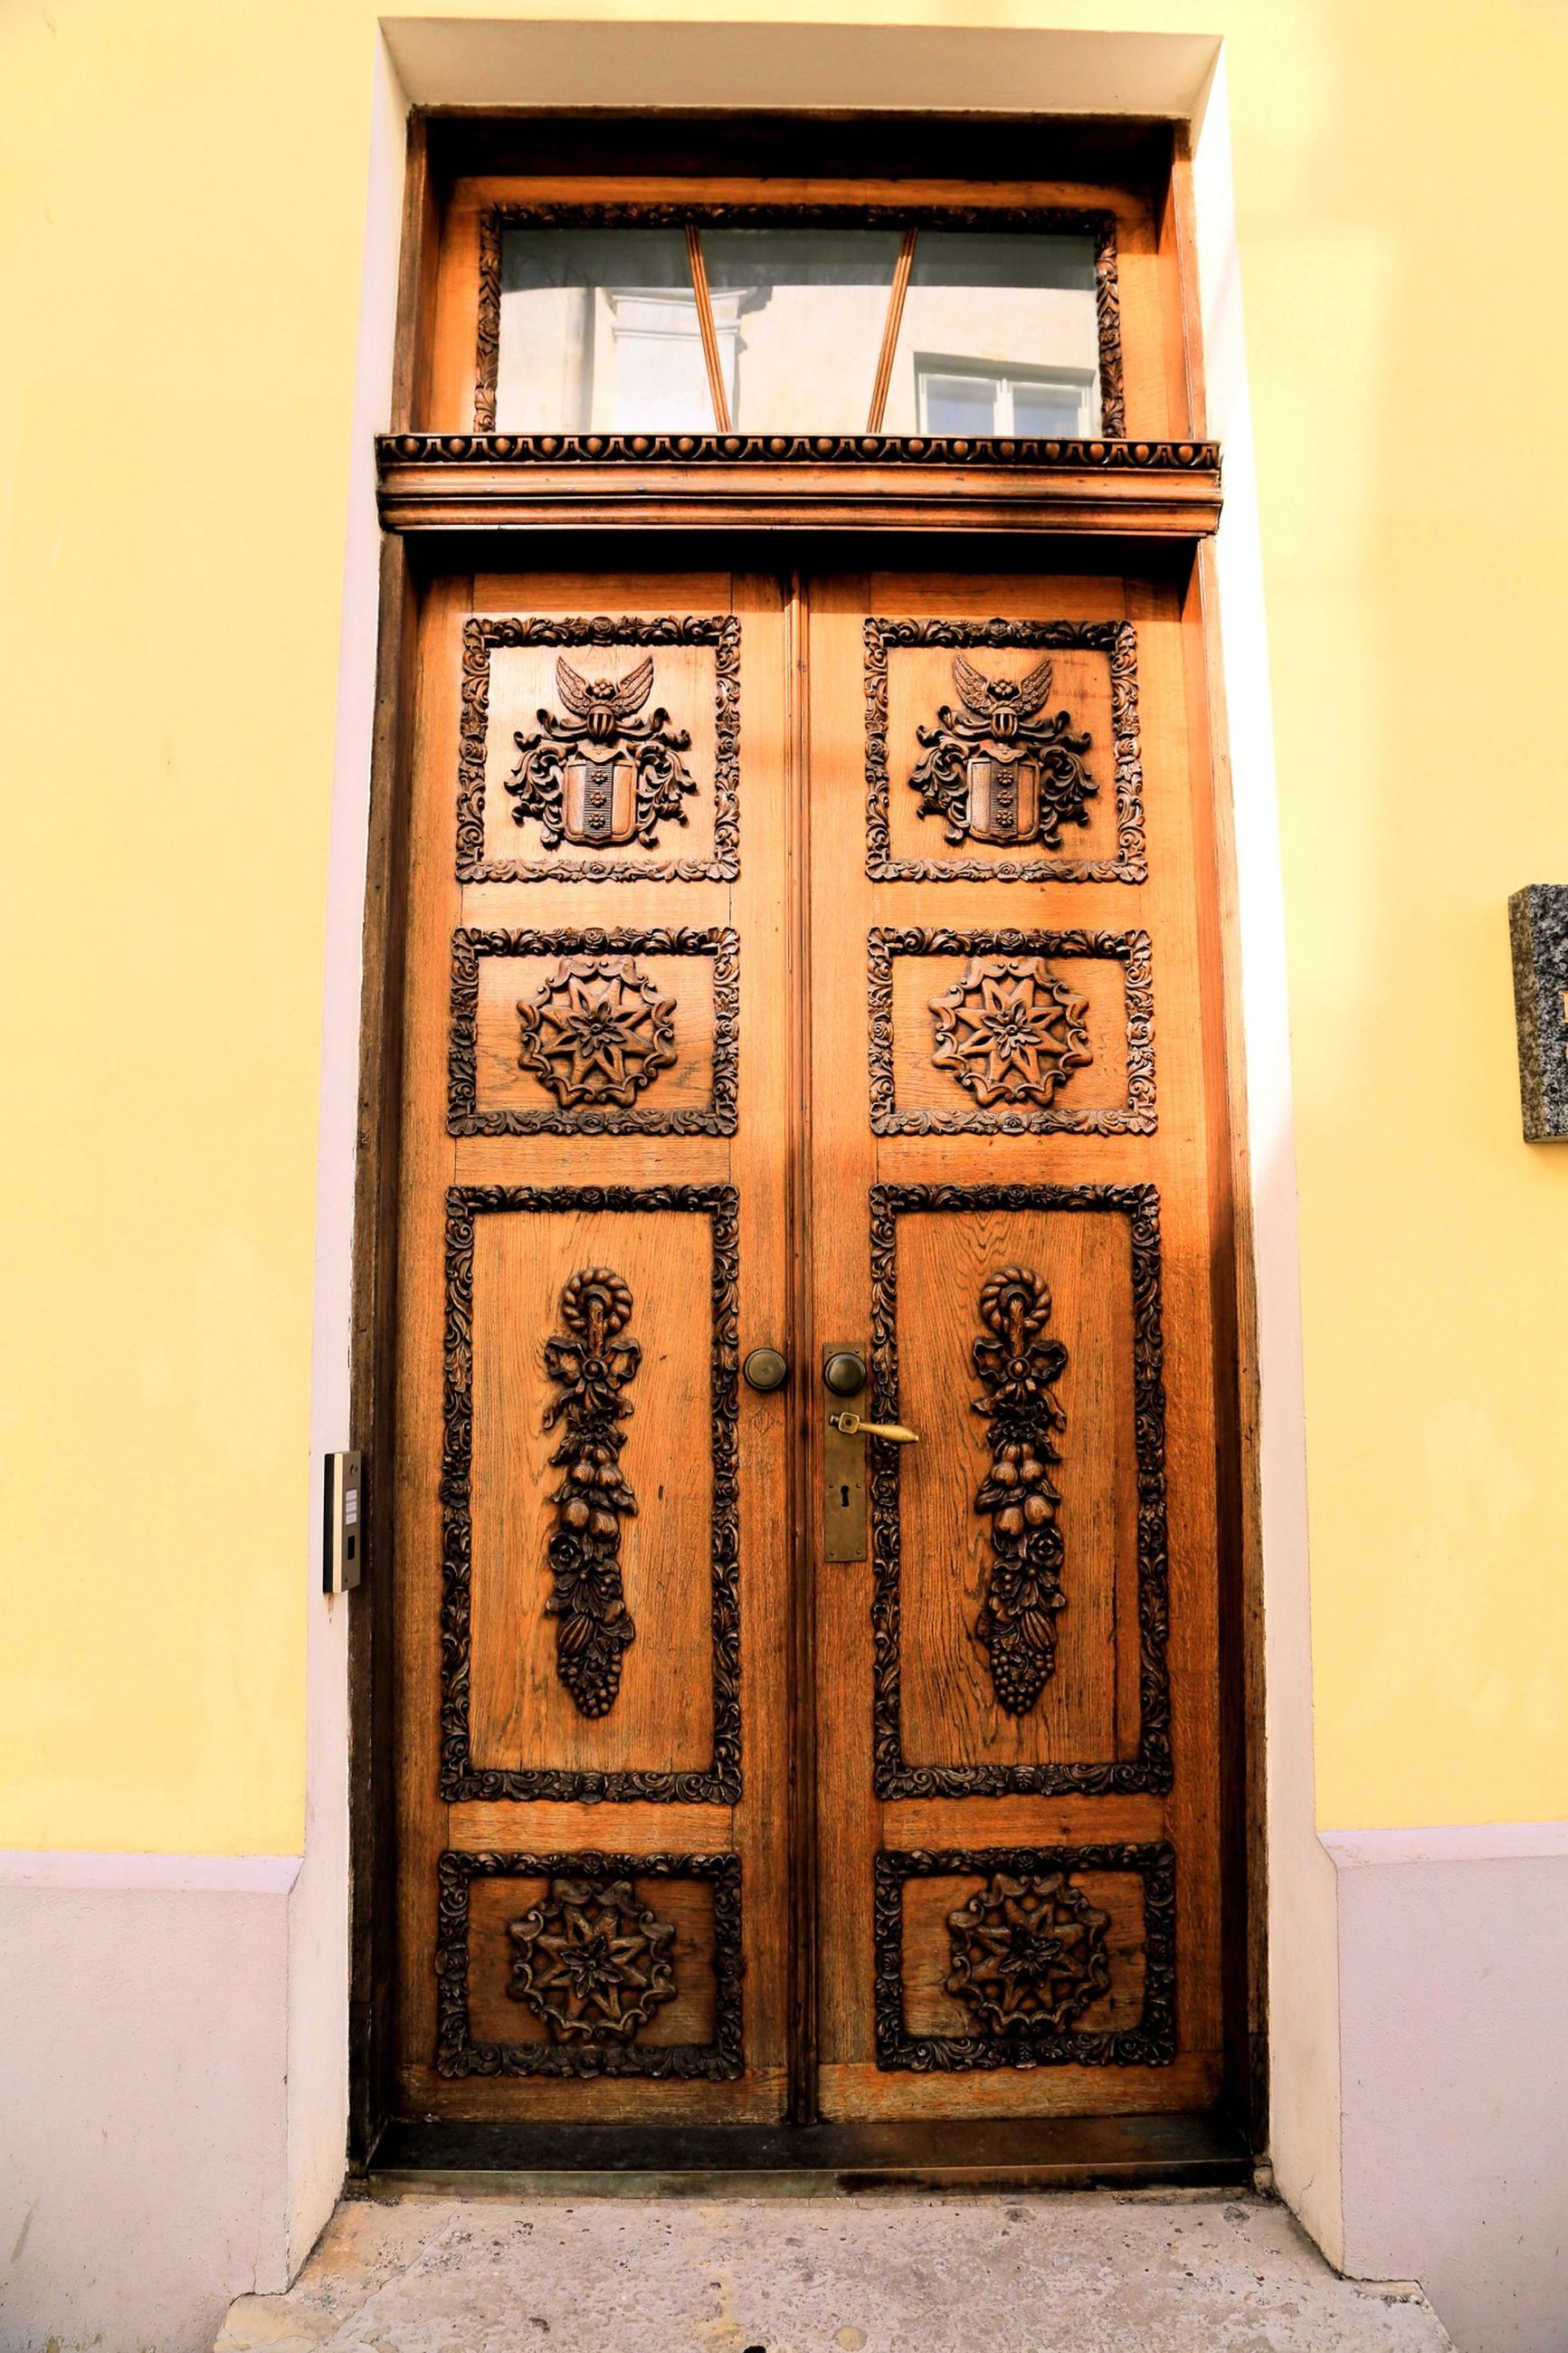 door, architecture, built structure, closed, building exterior, entrance, yellow, window, house, wood - material, wall - building feature, ornate, protection, safety, day, art, no people, doorway, design, facade